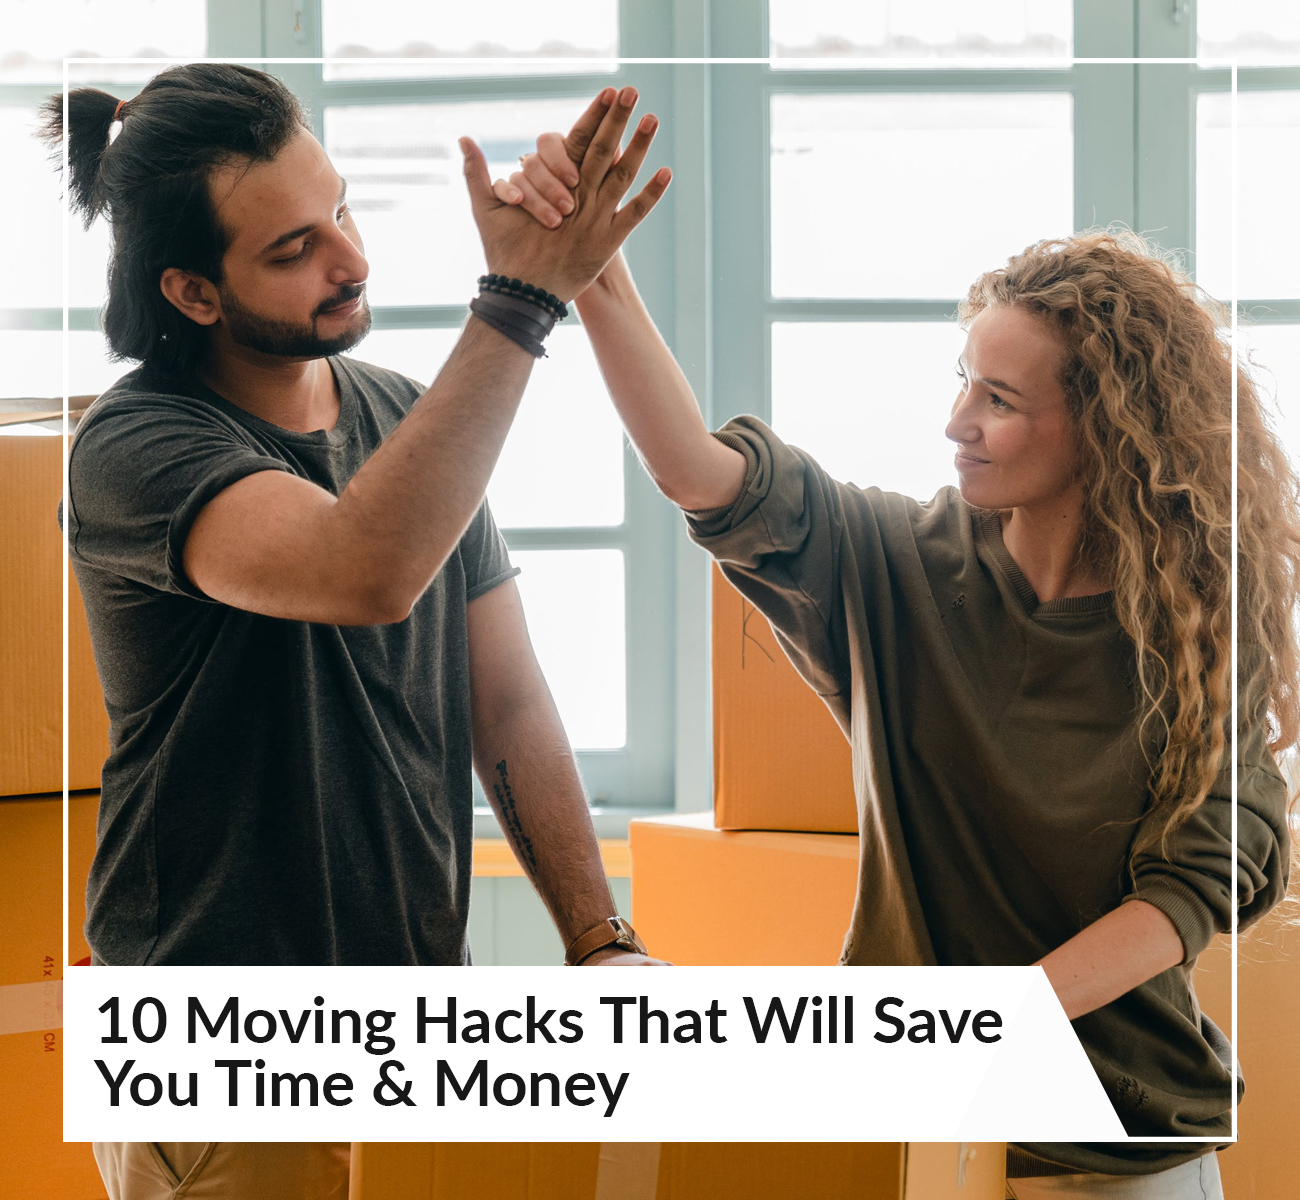 10 Moving Hacks That Will Save You Time and Money